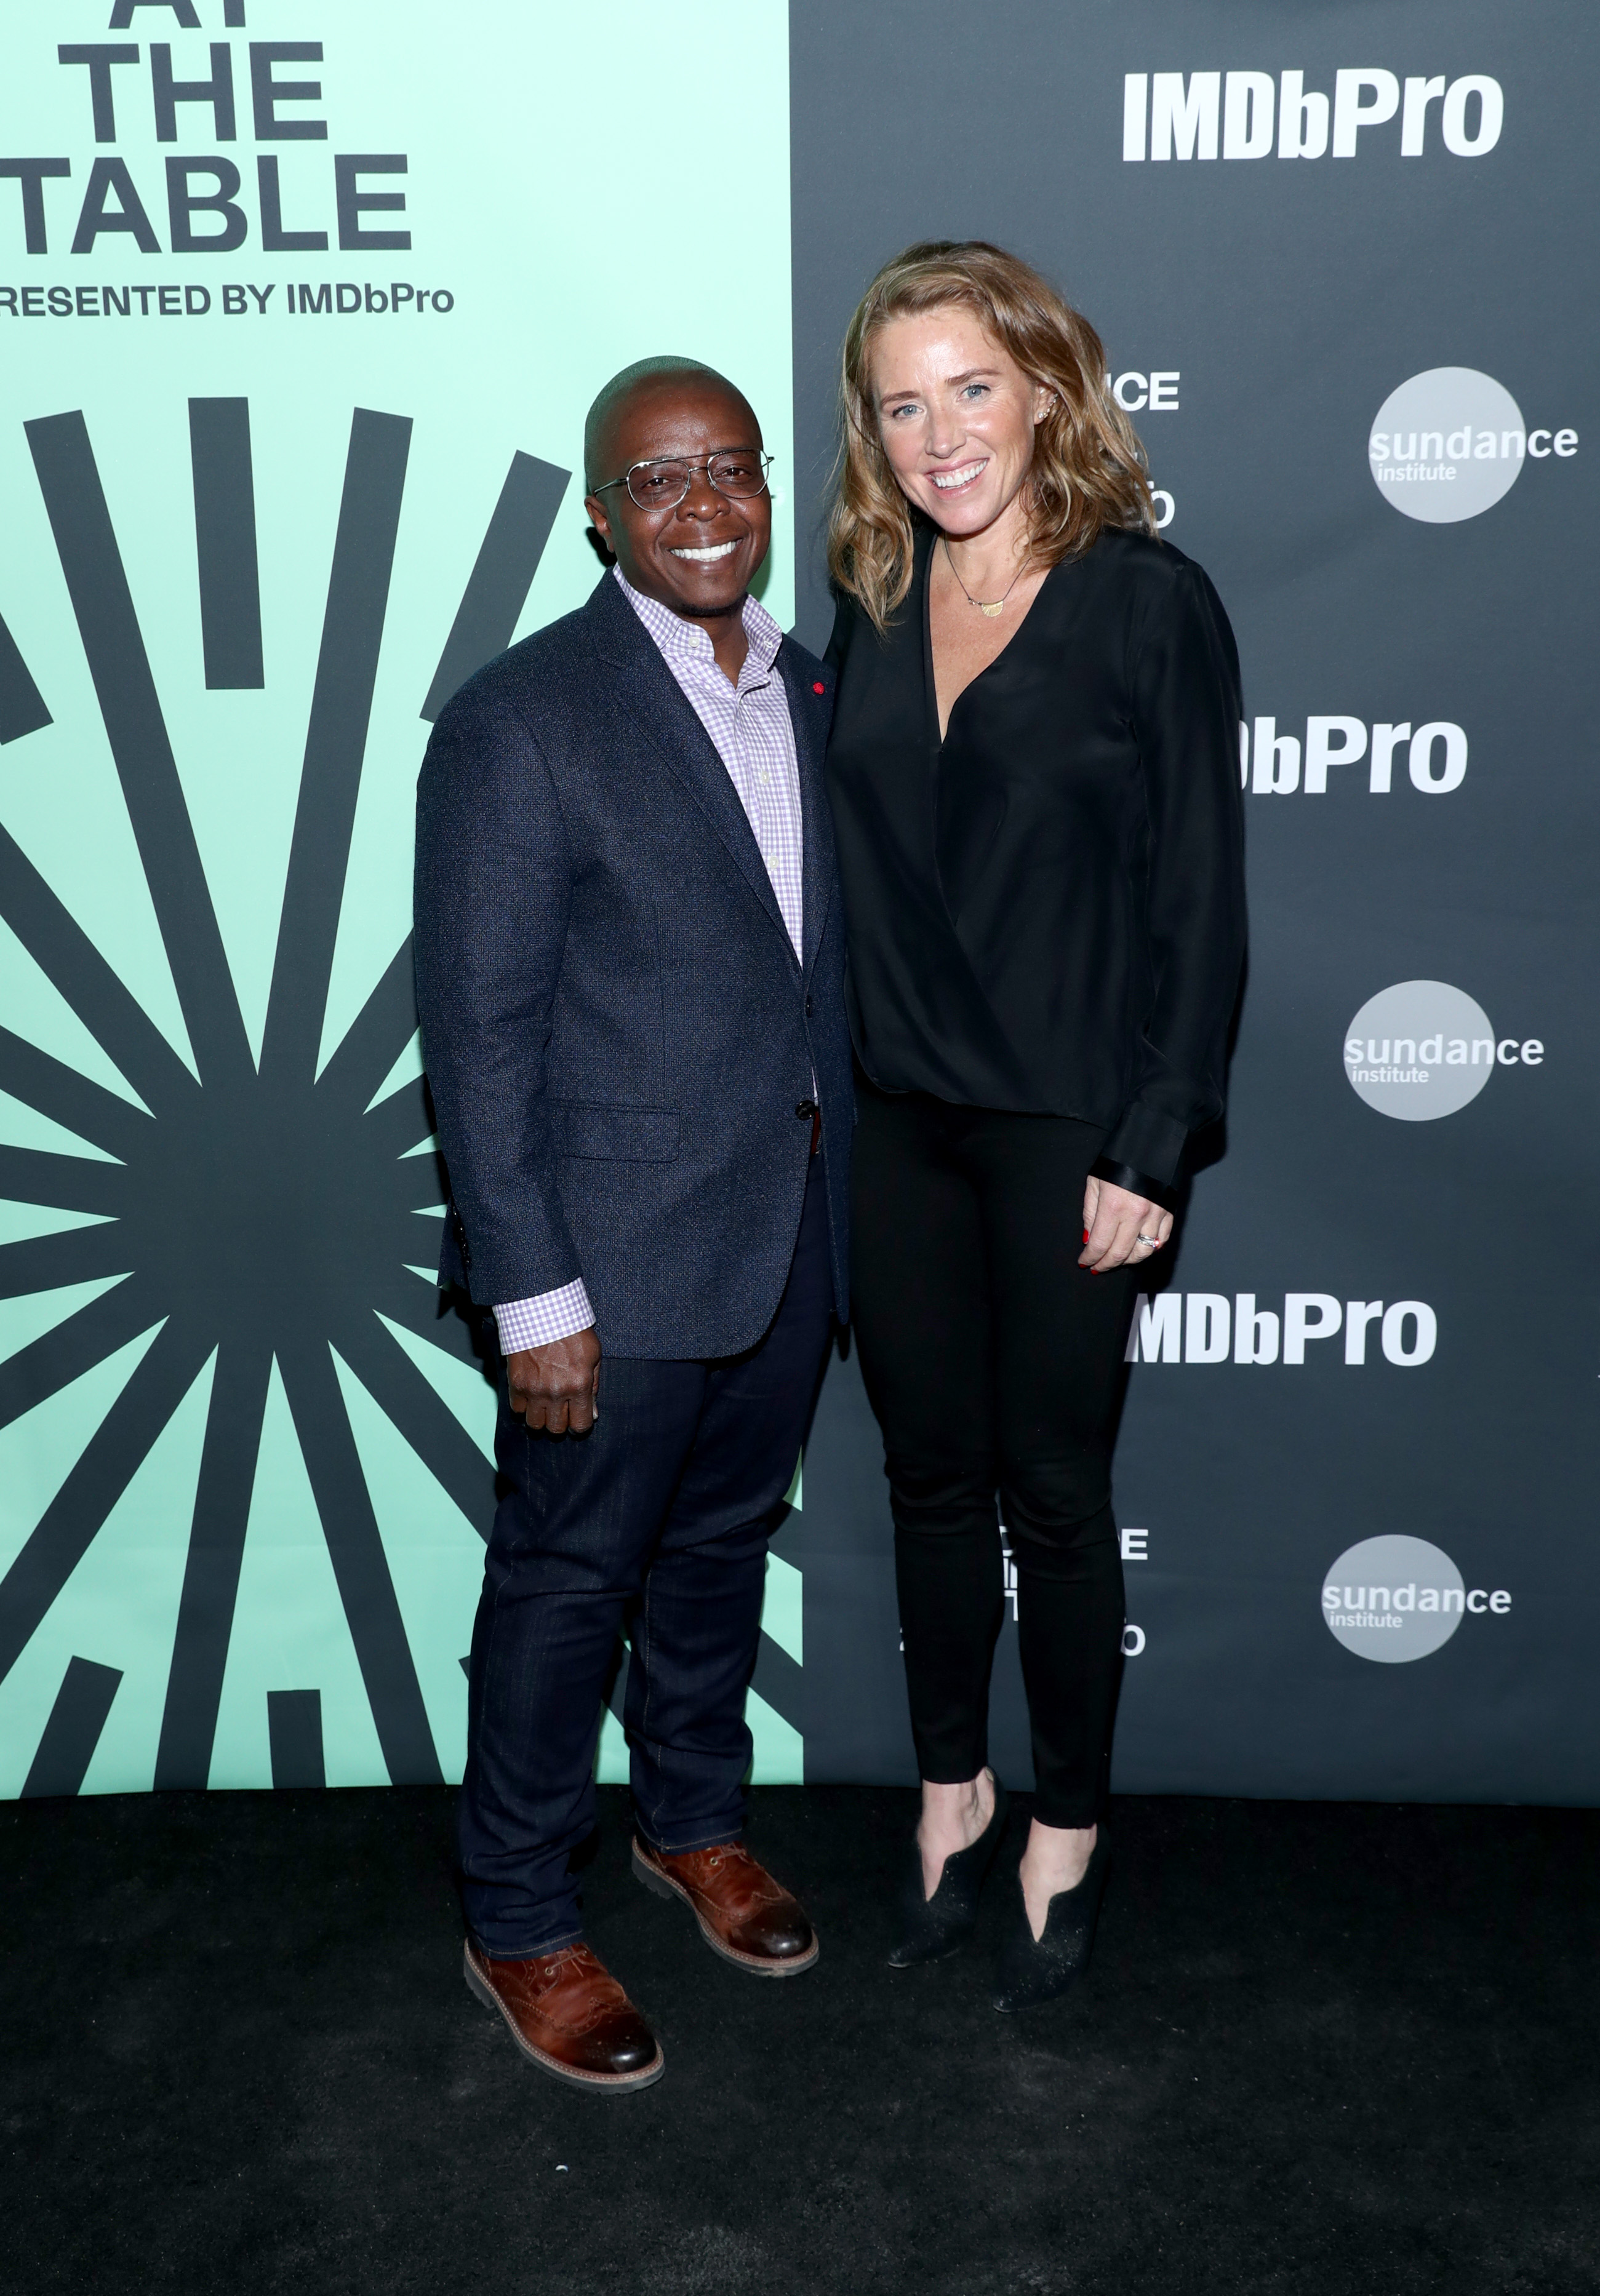 Amy Redford and Yance Ford